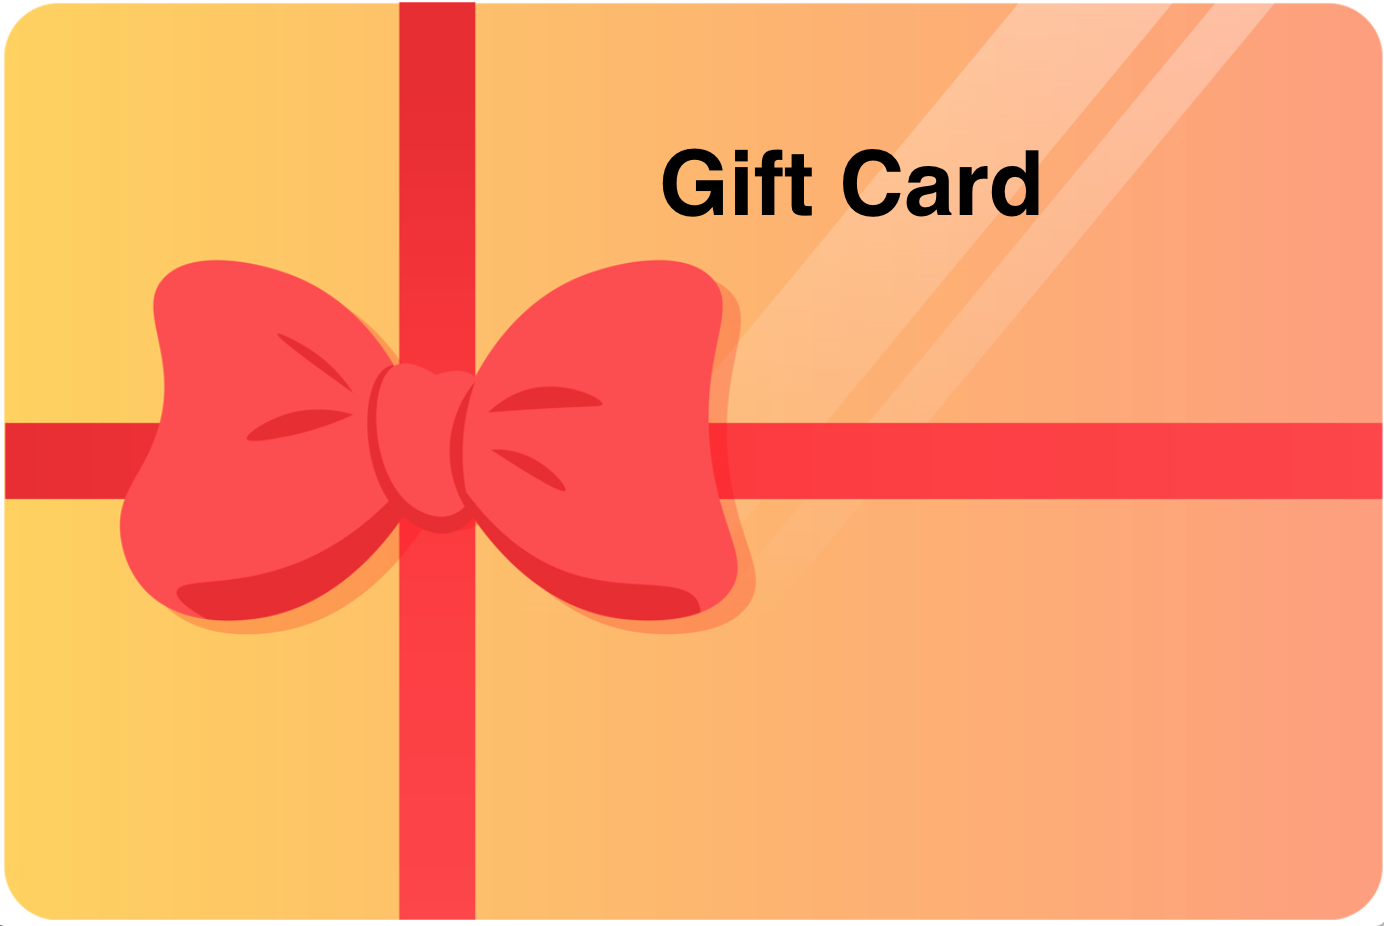 Gift card - Click here to choose amount